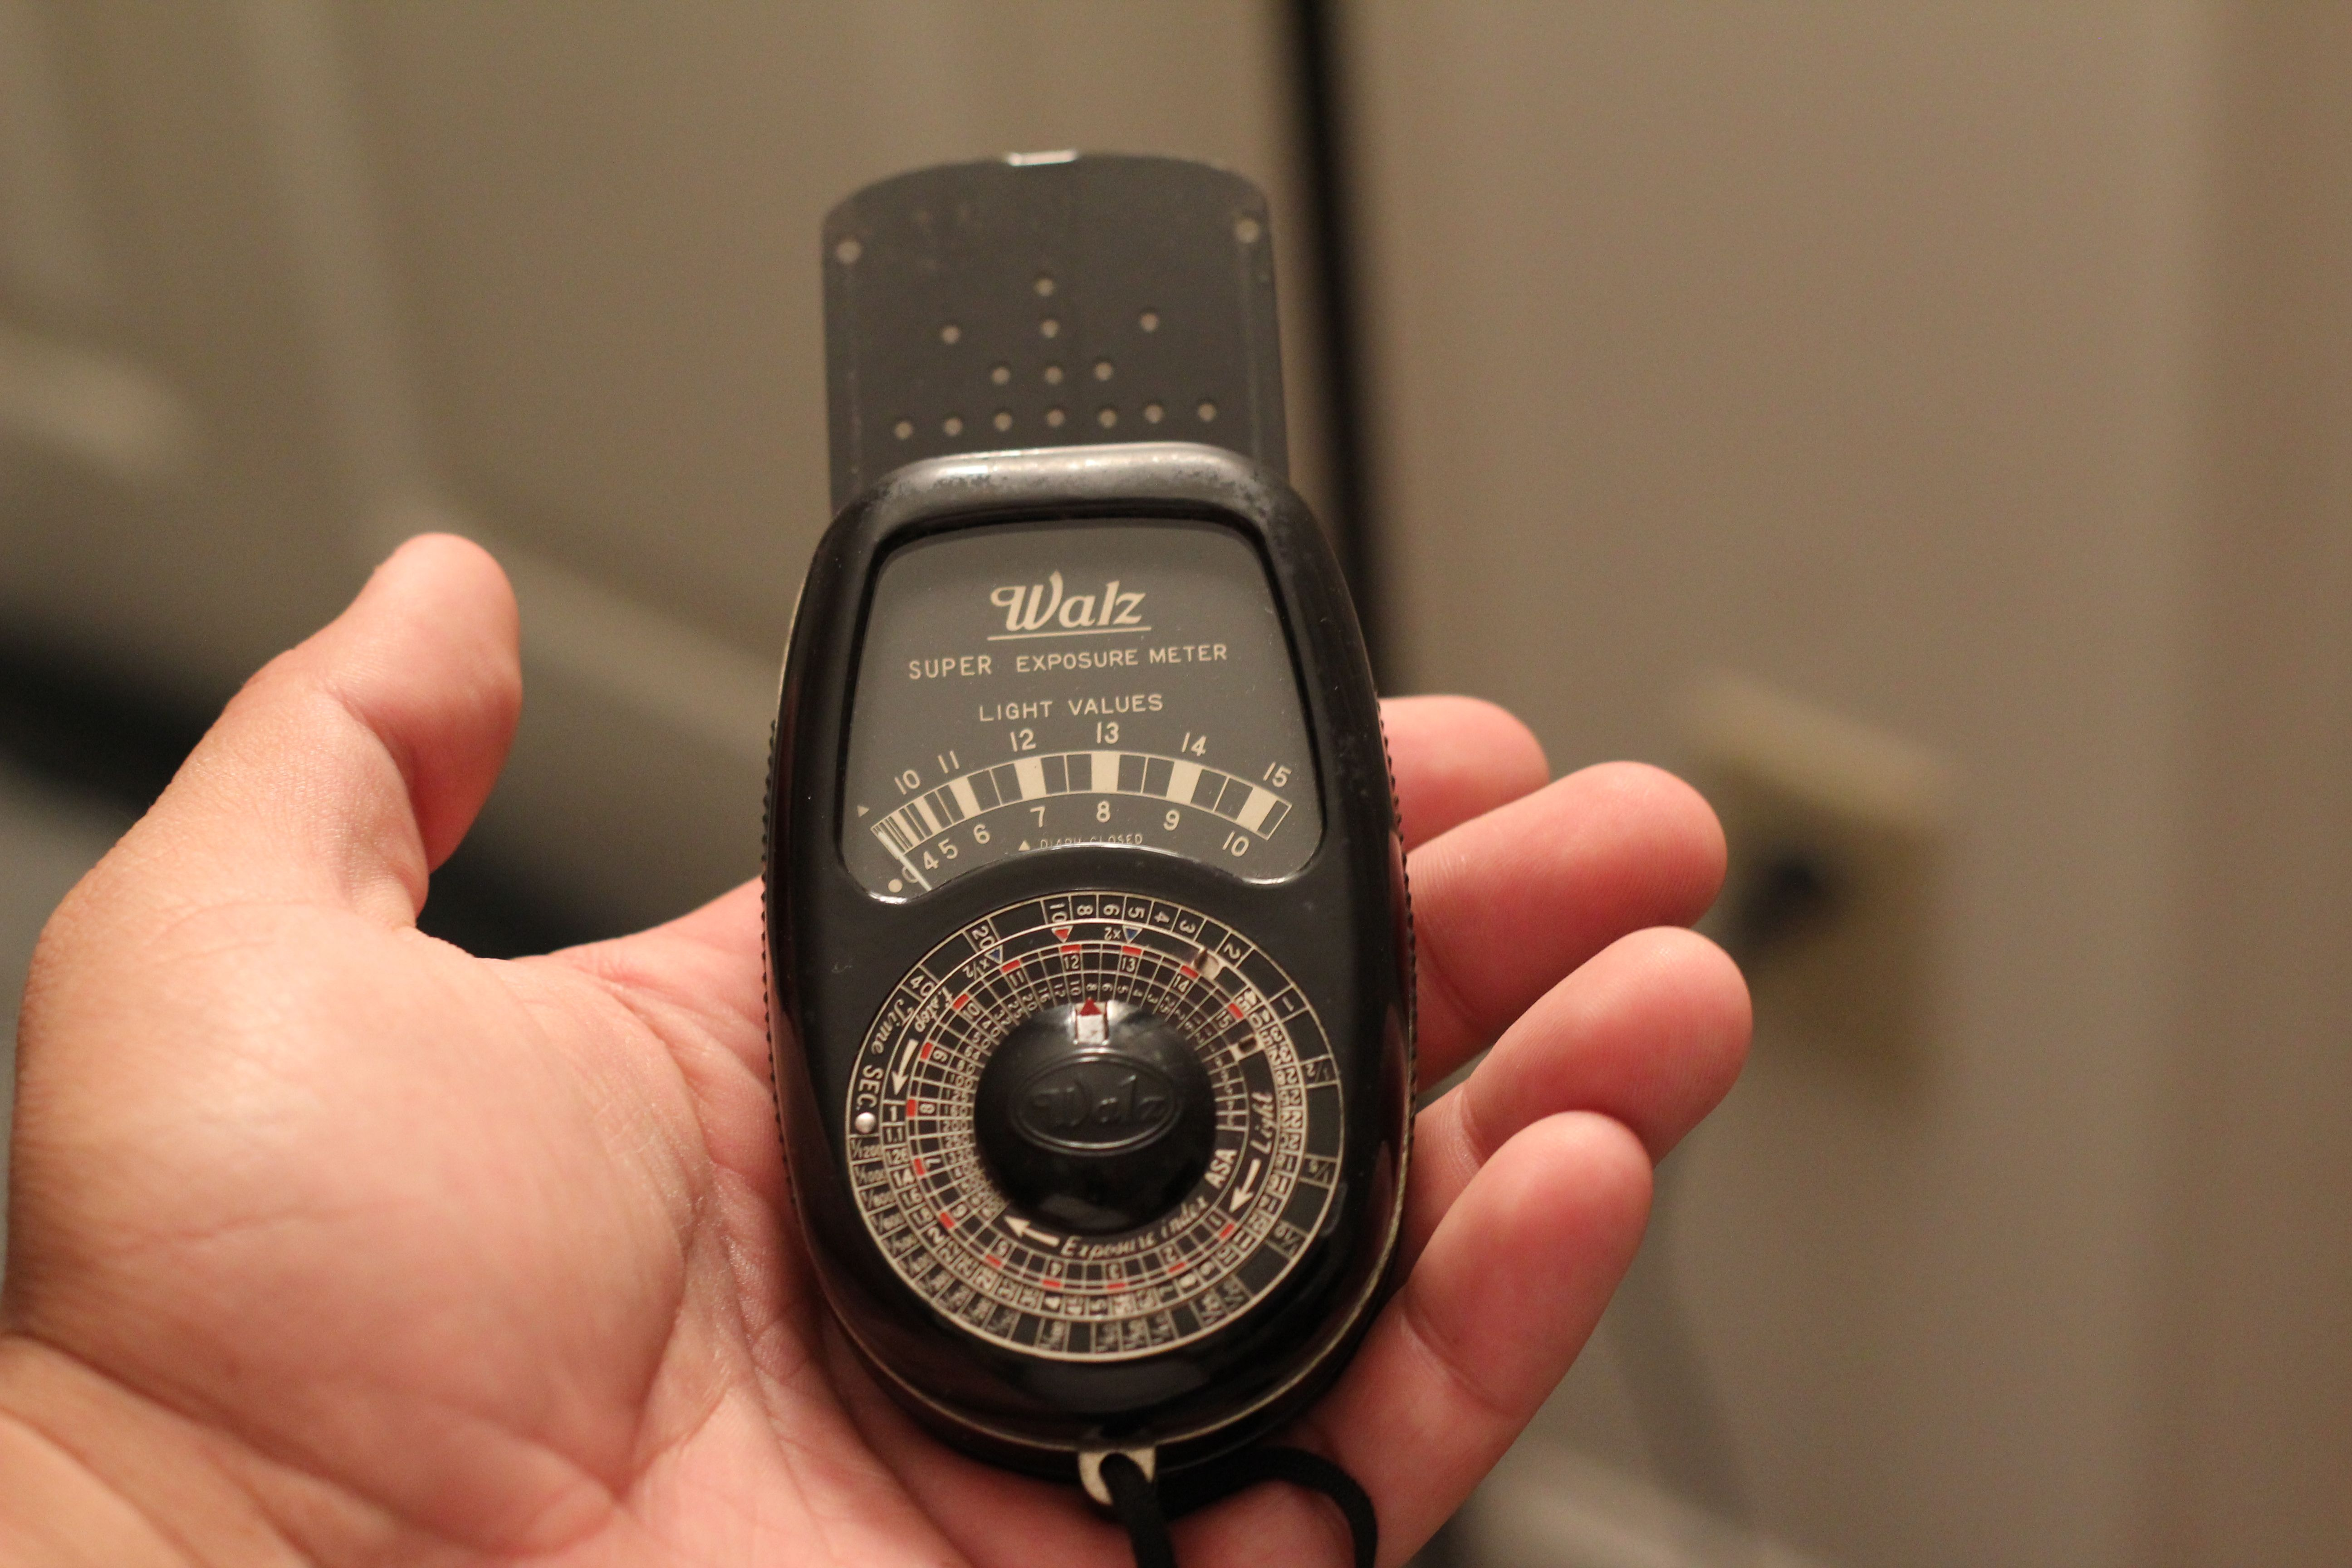 Walz Super Exposure Meter Paid $5 for it.